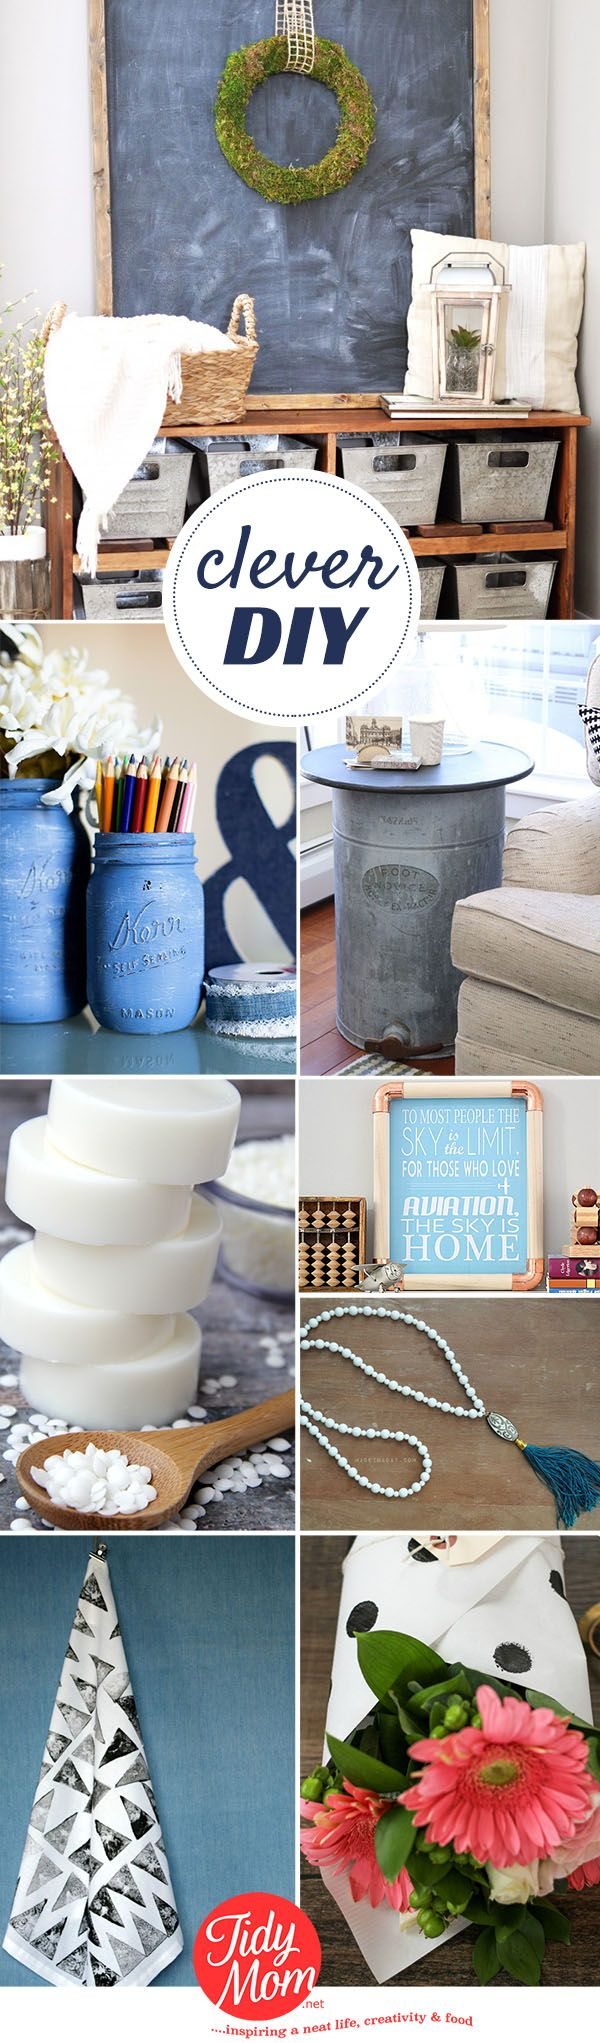 Clever DIY projects that go from ordinary objects to extraordinarty projects at TidyMom.net